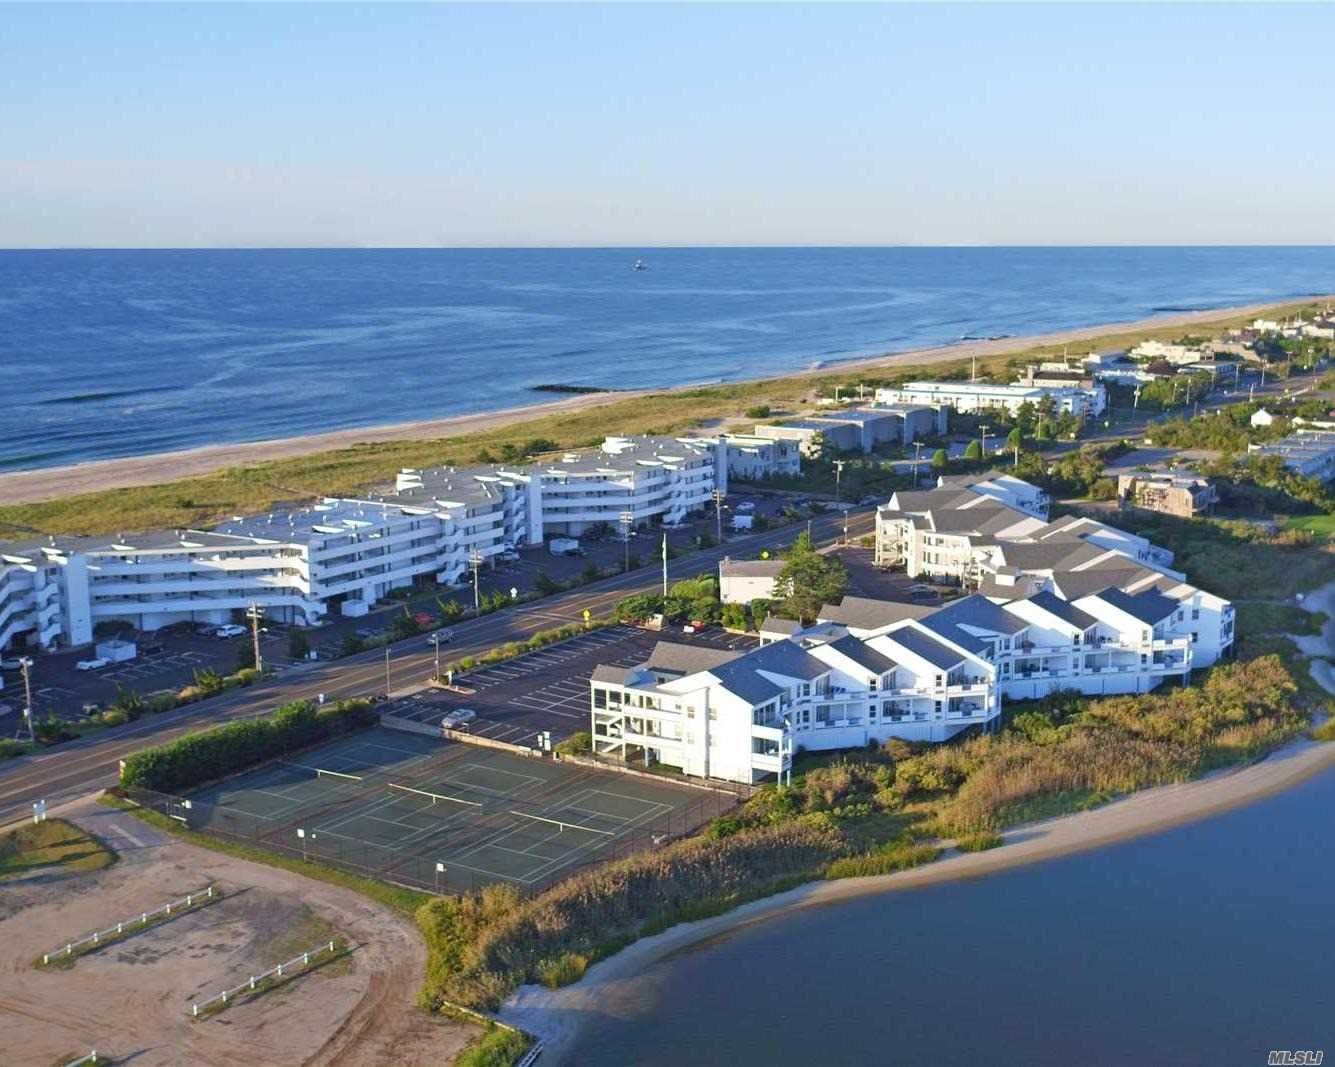 Property for sale at 260 Dune Rd, Westhampton Bch,  NY 11978